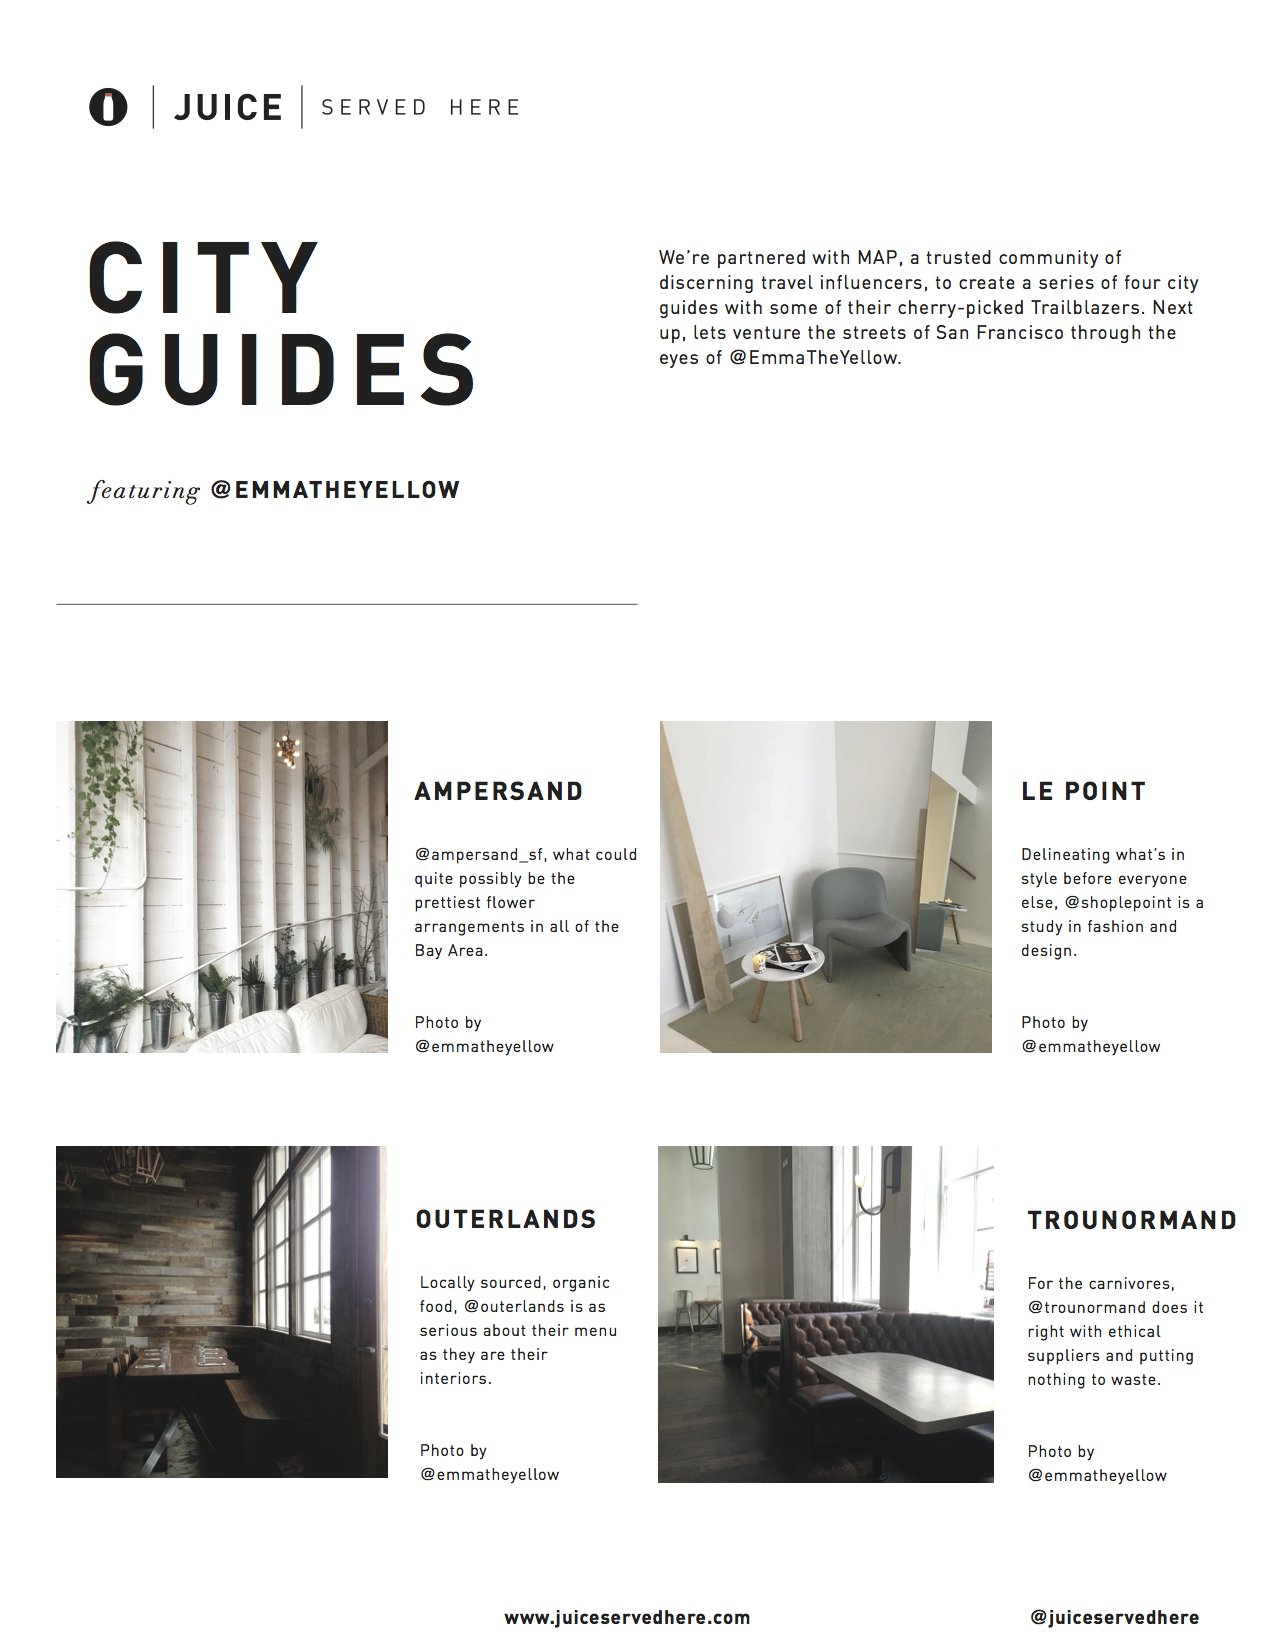 san-francisco-city-guide-madewithmap-juiceservedhere